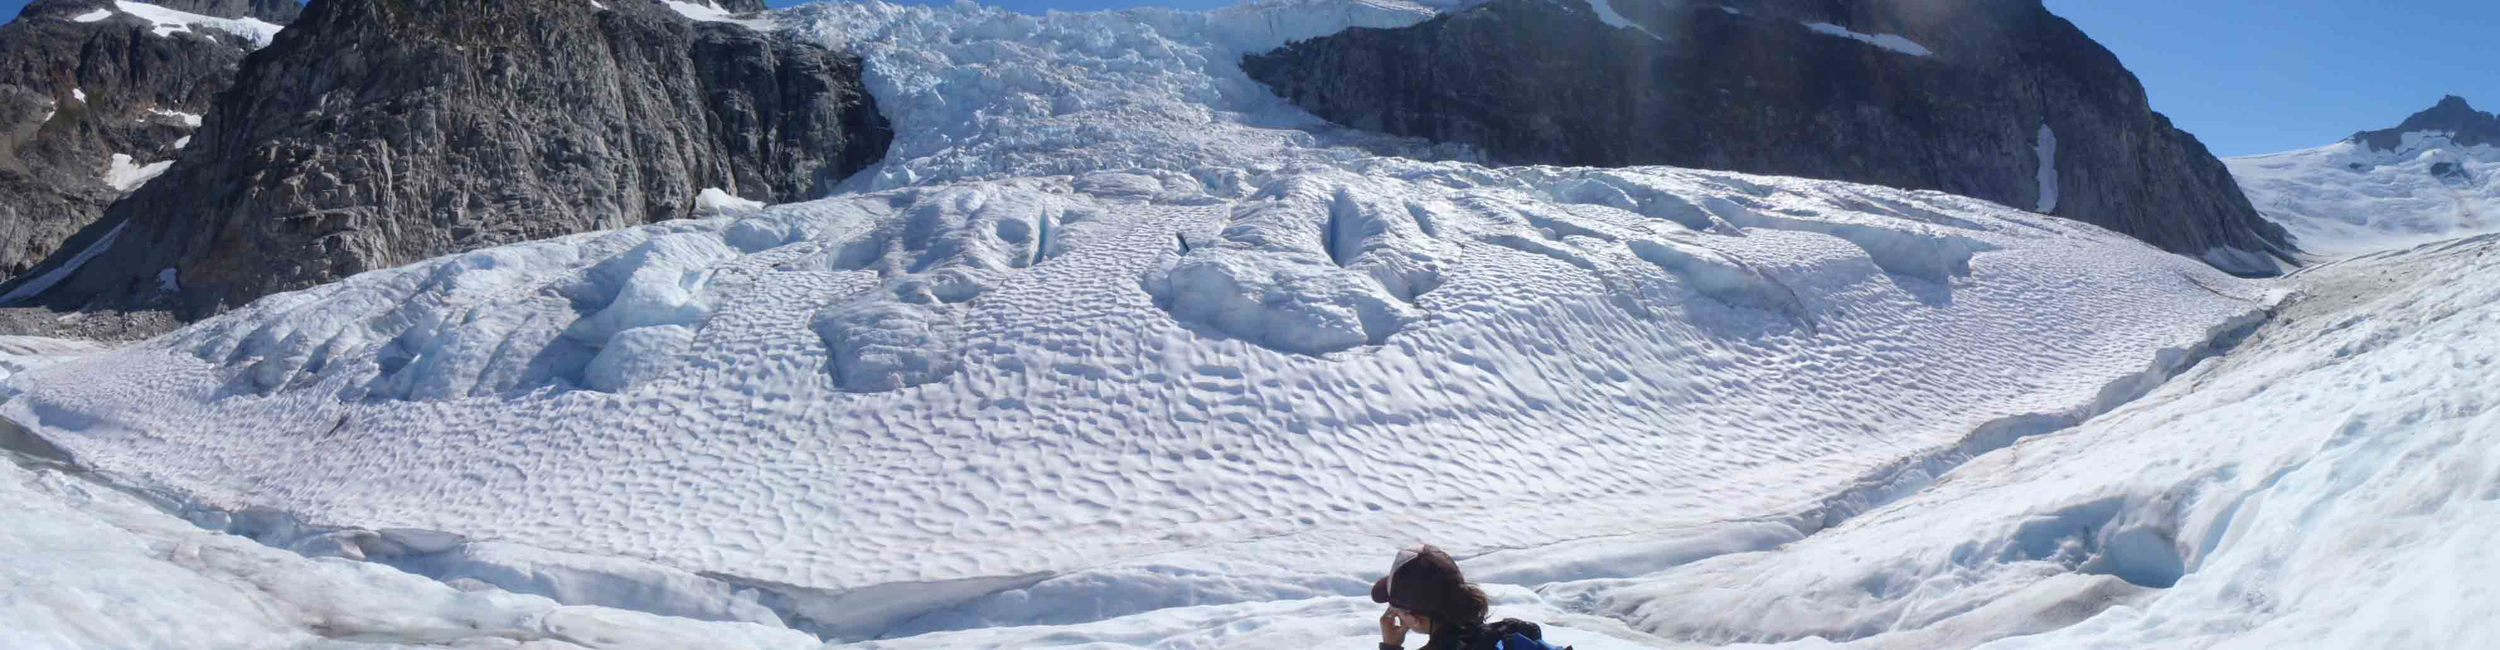 Panorama of one of the ogives near the base of the Vaughan Lewis Icefall (in the background).  Photo by William Jenkins.